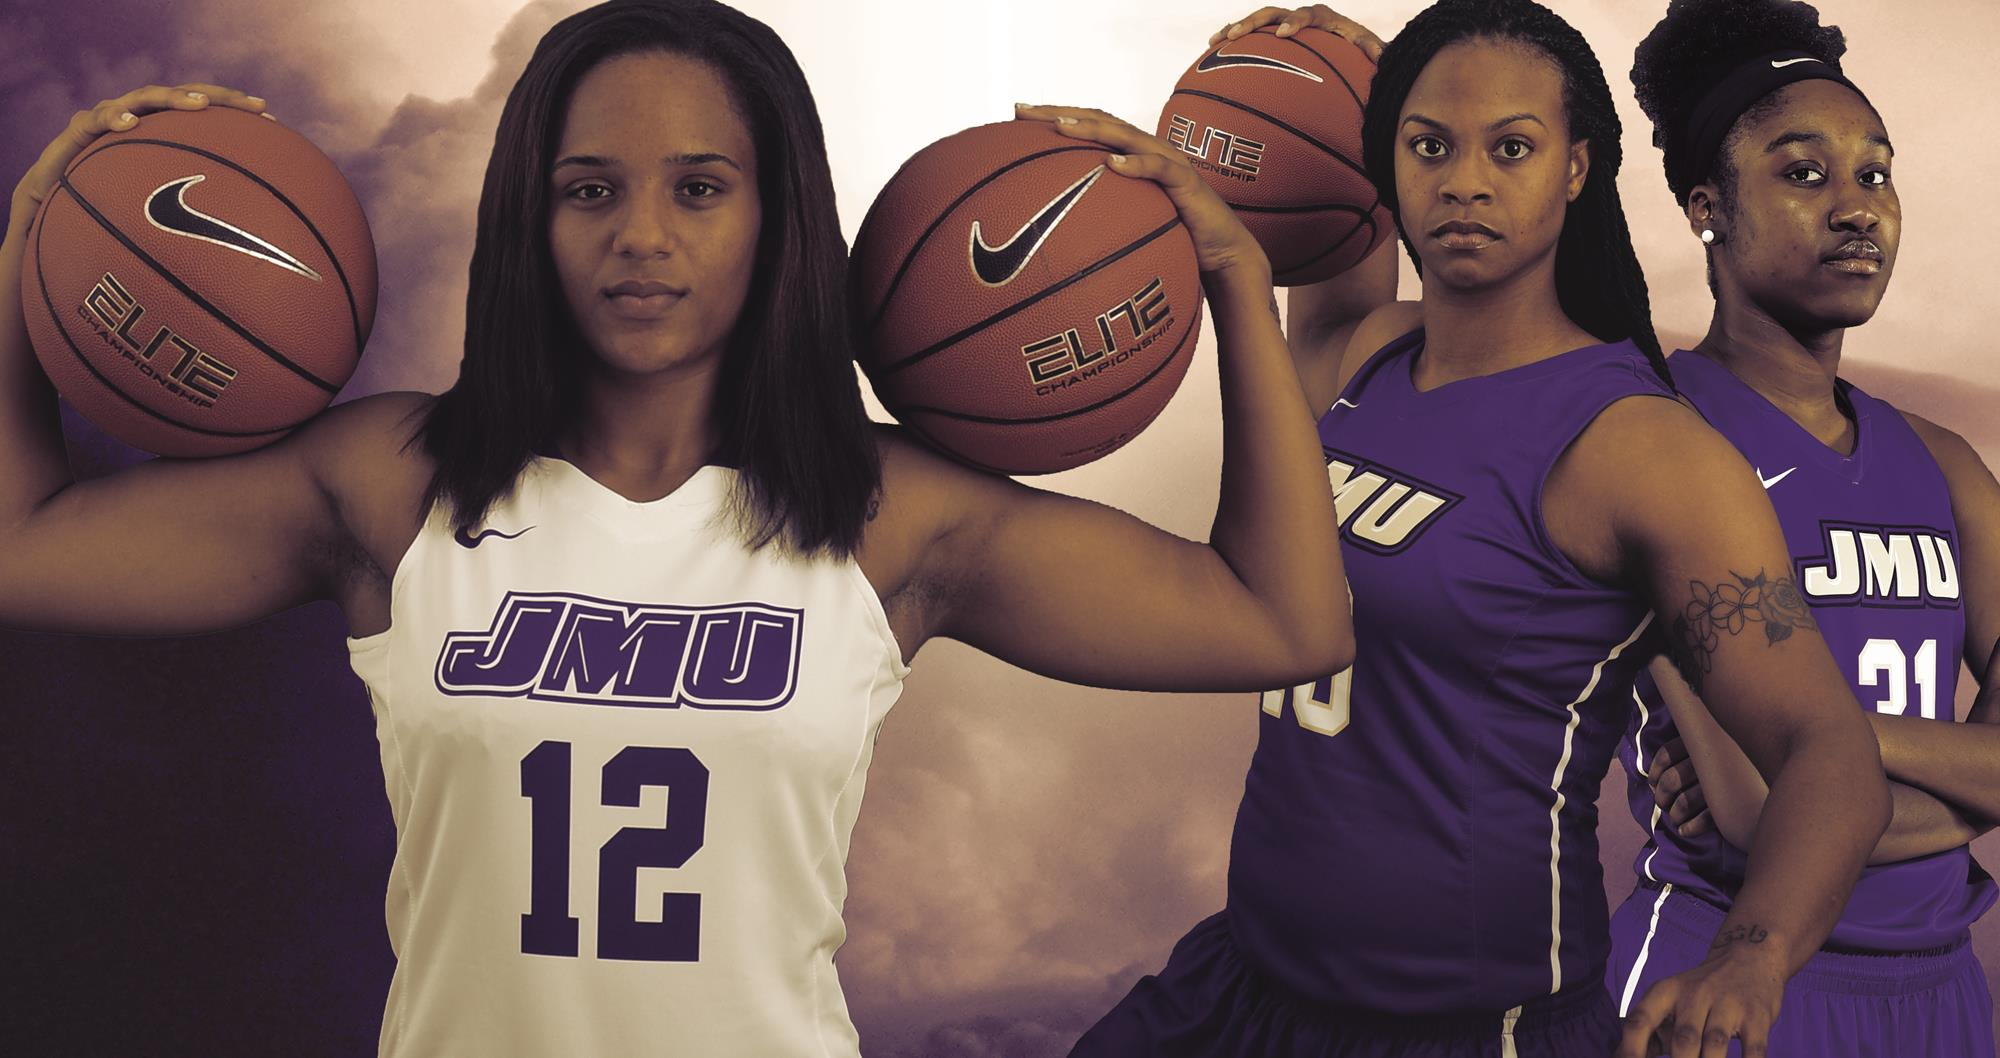 Women's Basketball: Hall Voted Preseason Player of the Year, JMU Picked to Win CAA